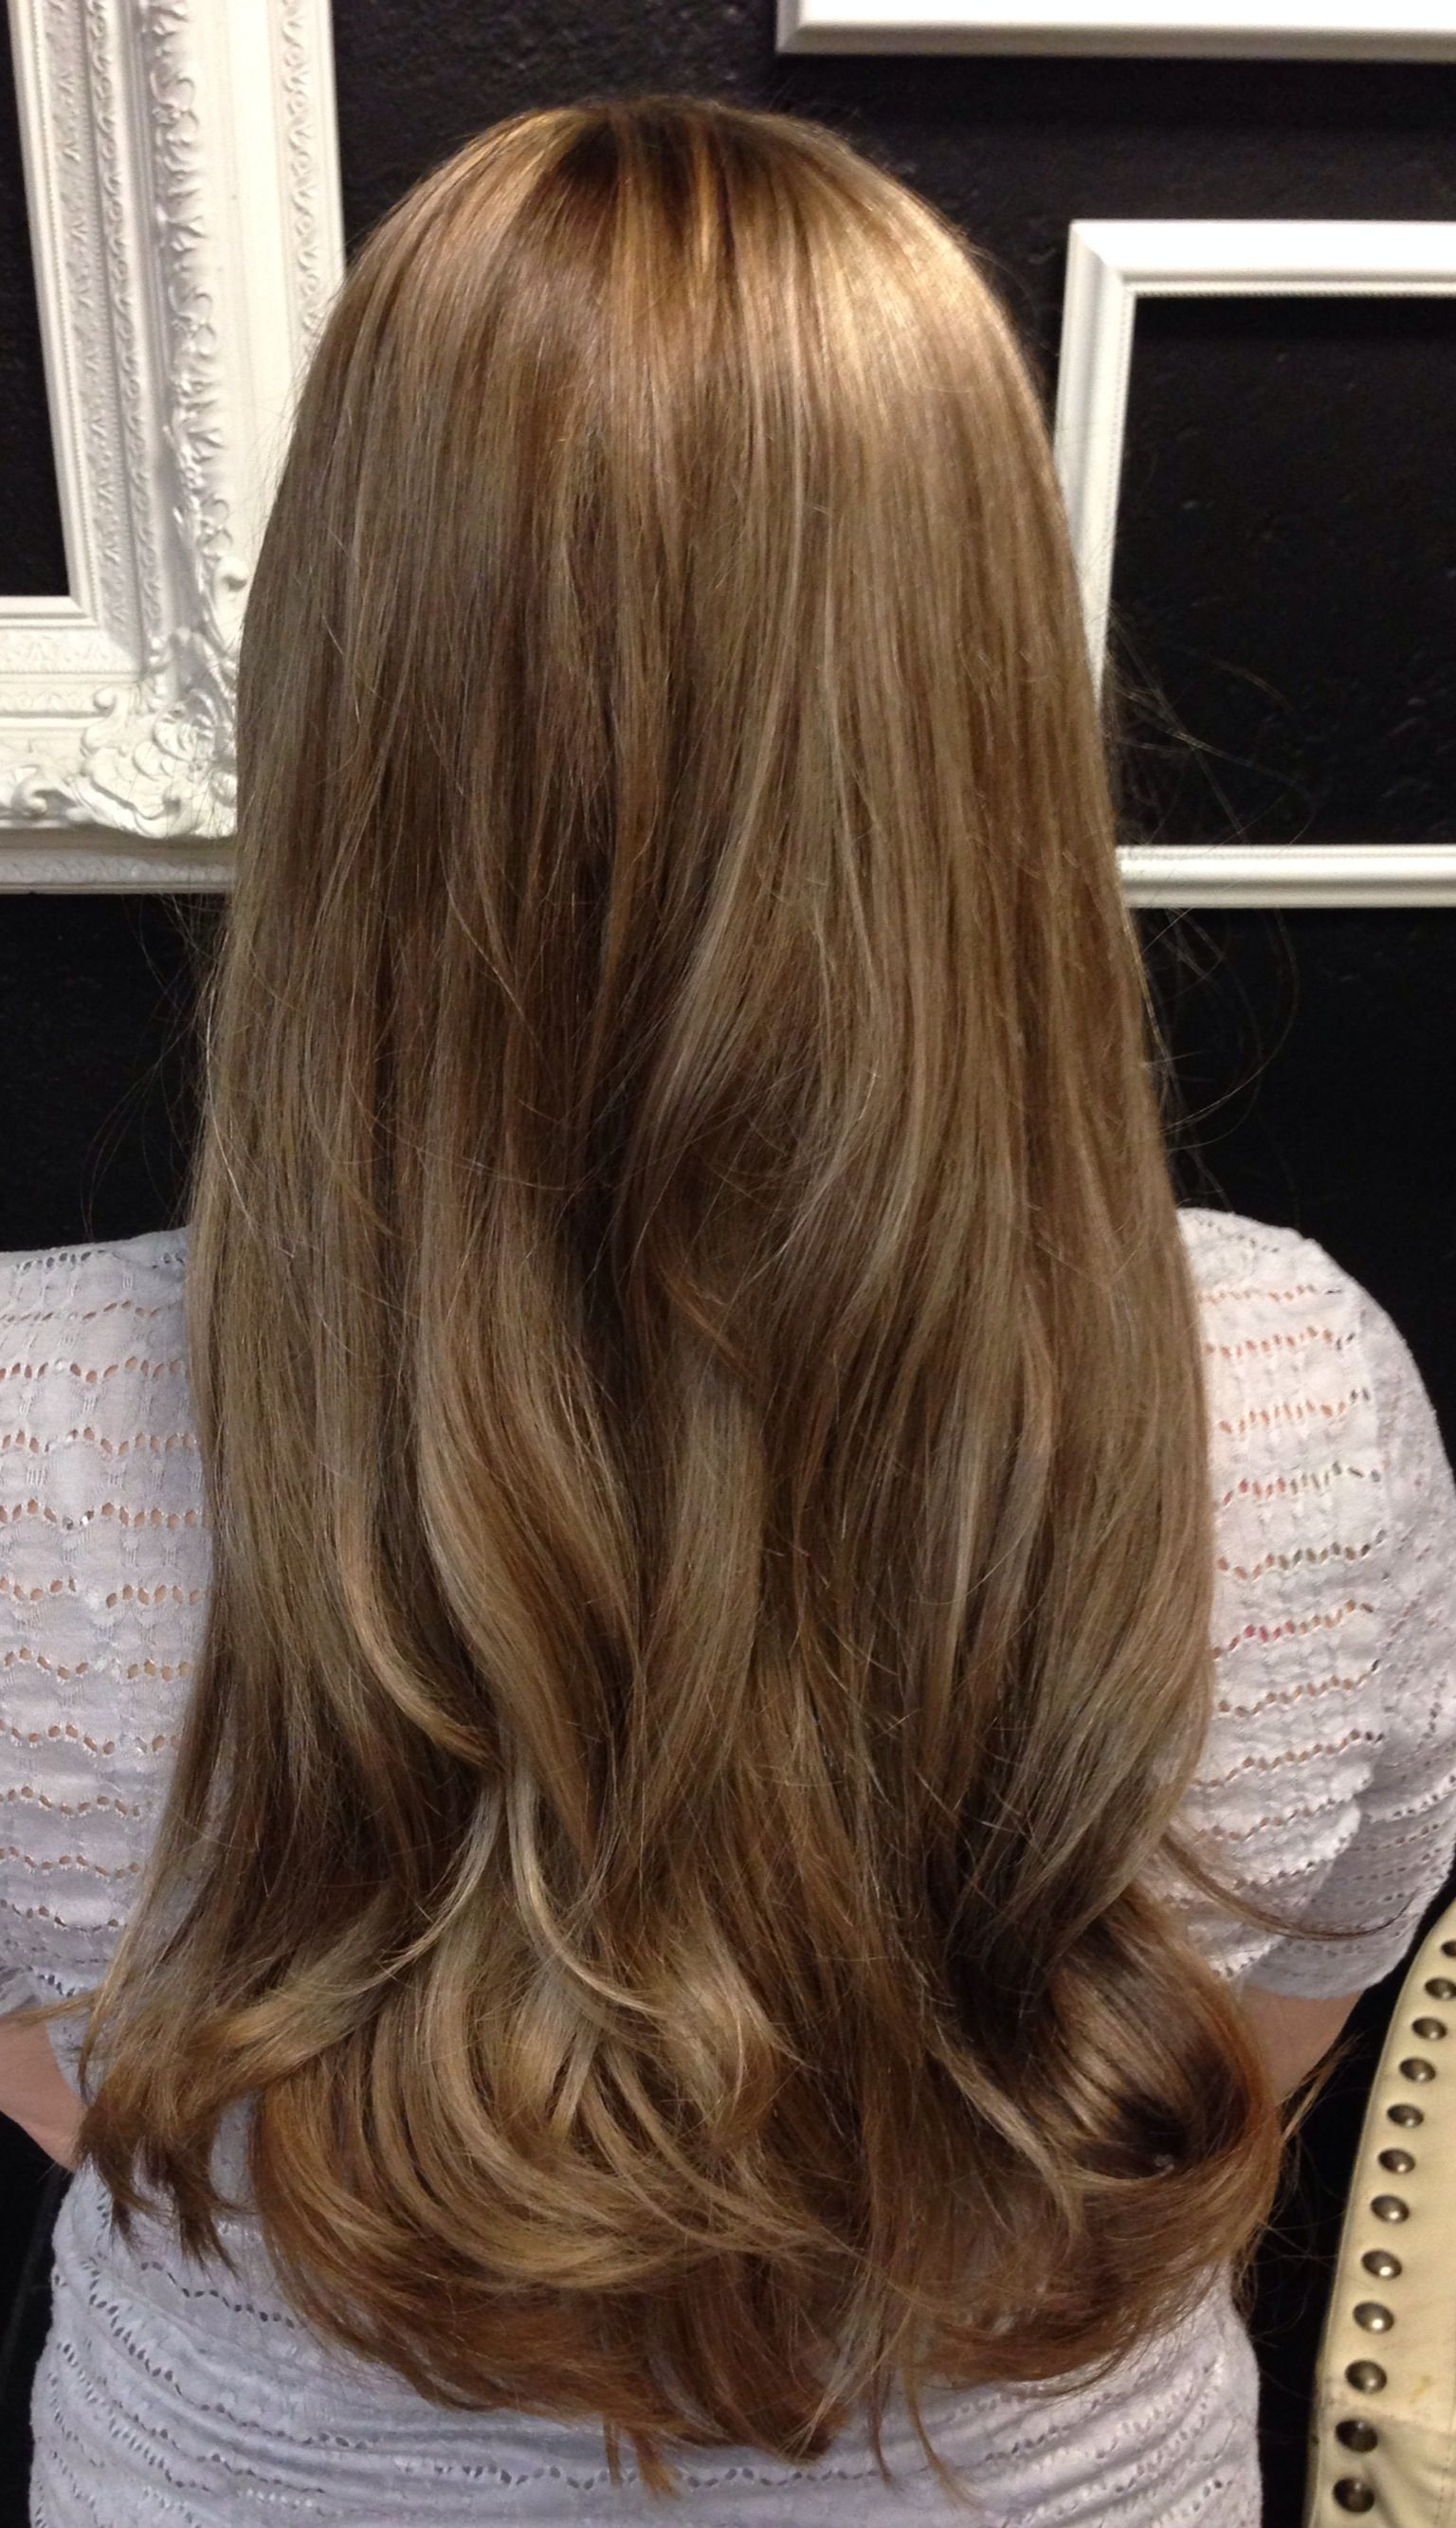 Medium Brown With Beige Golden Tones Subtle Blonde Highlights